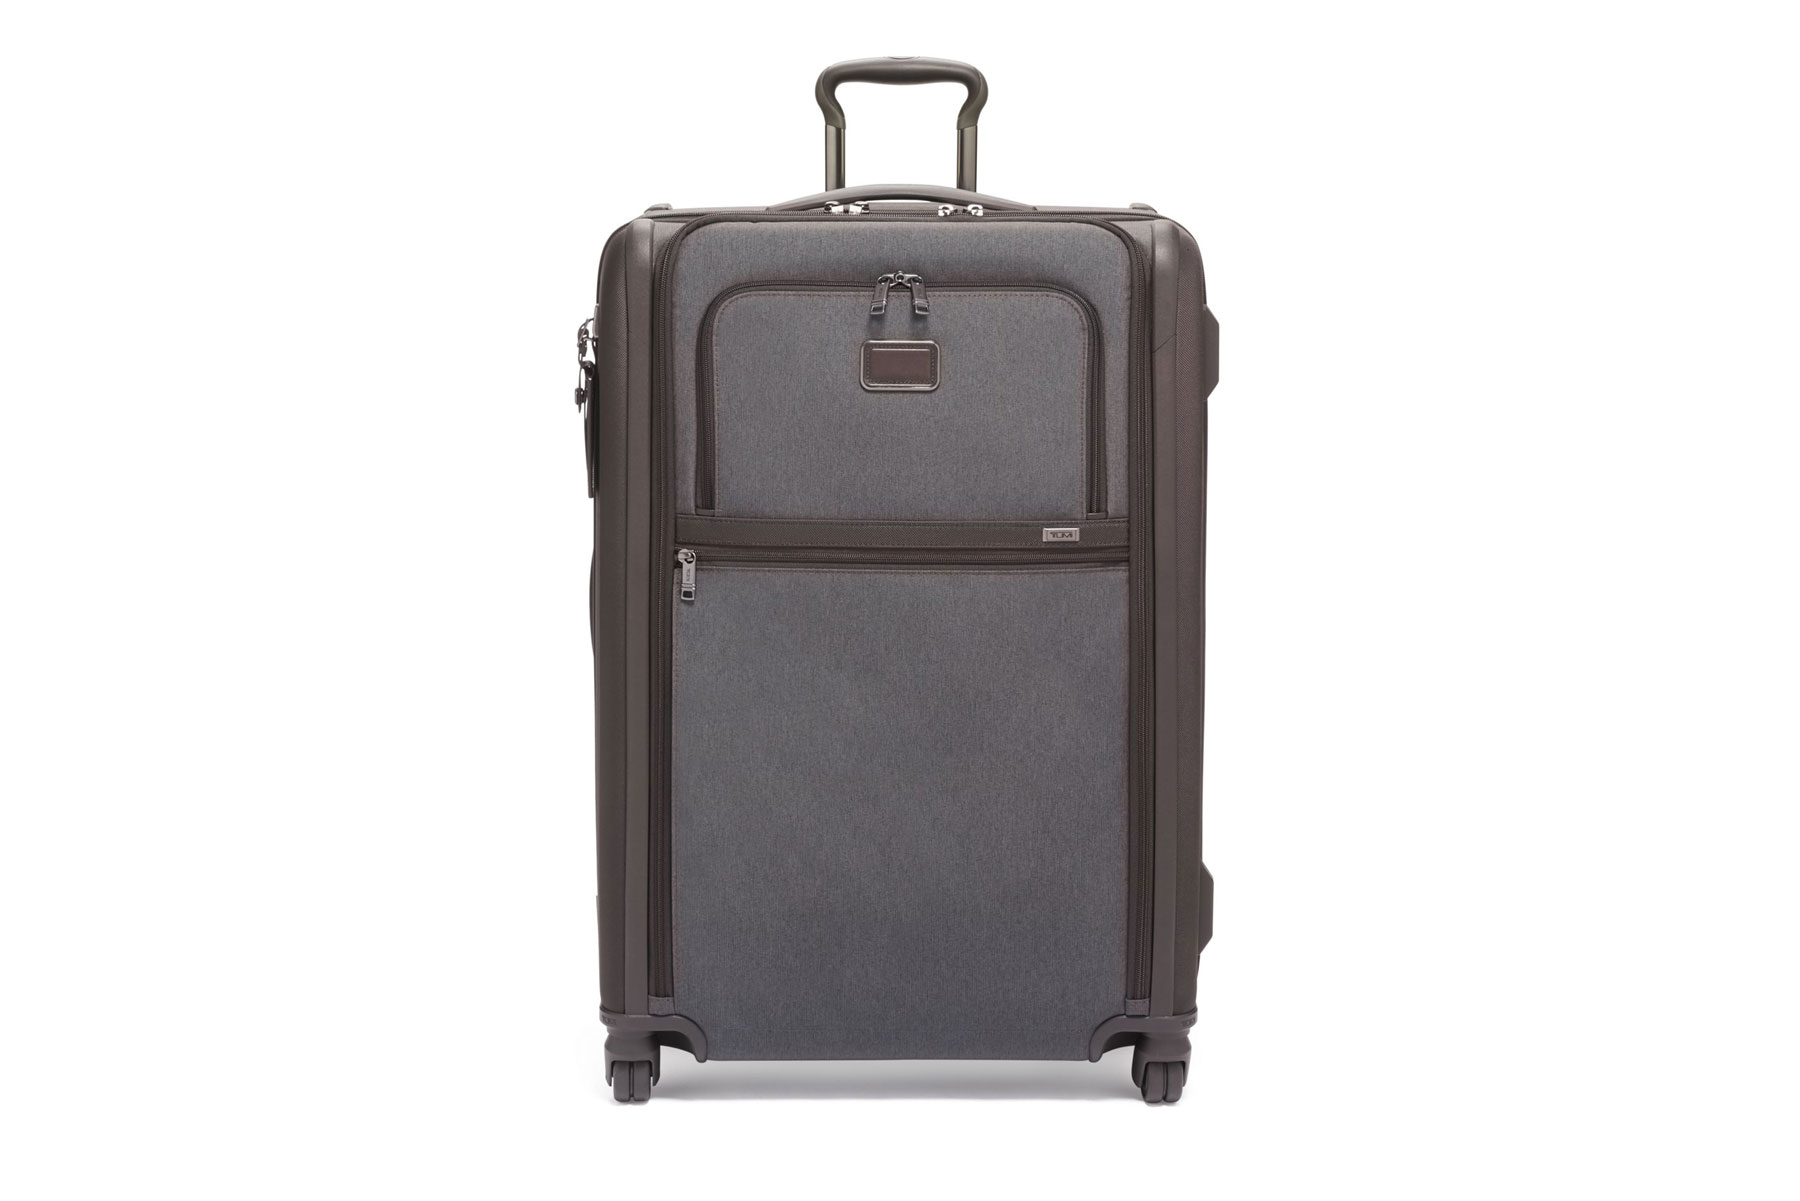 Grey and brown soft-side rolling suitcase